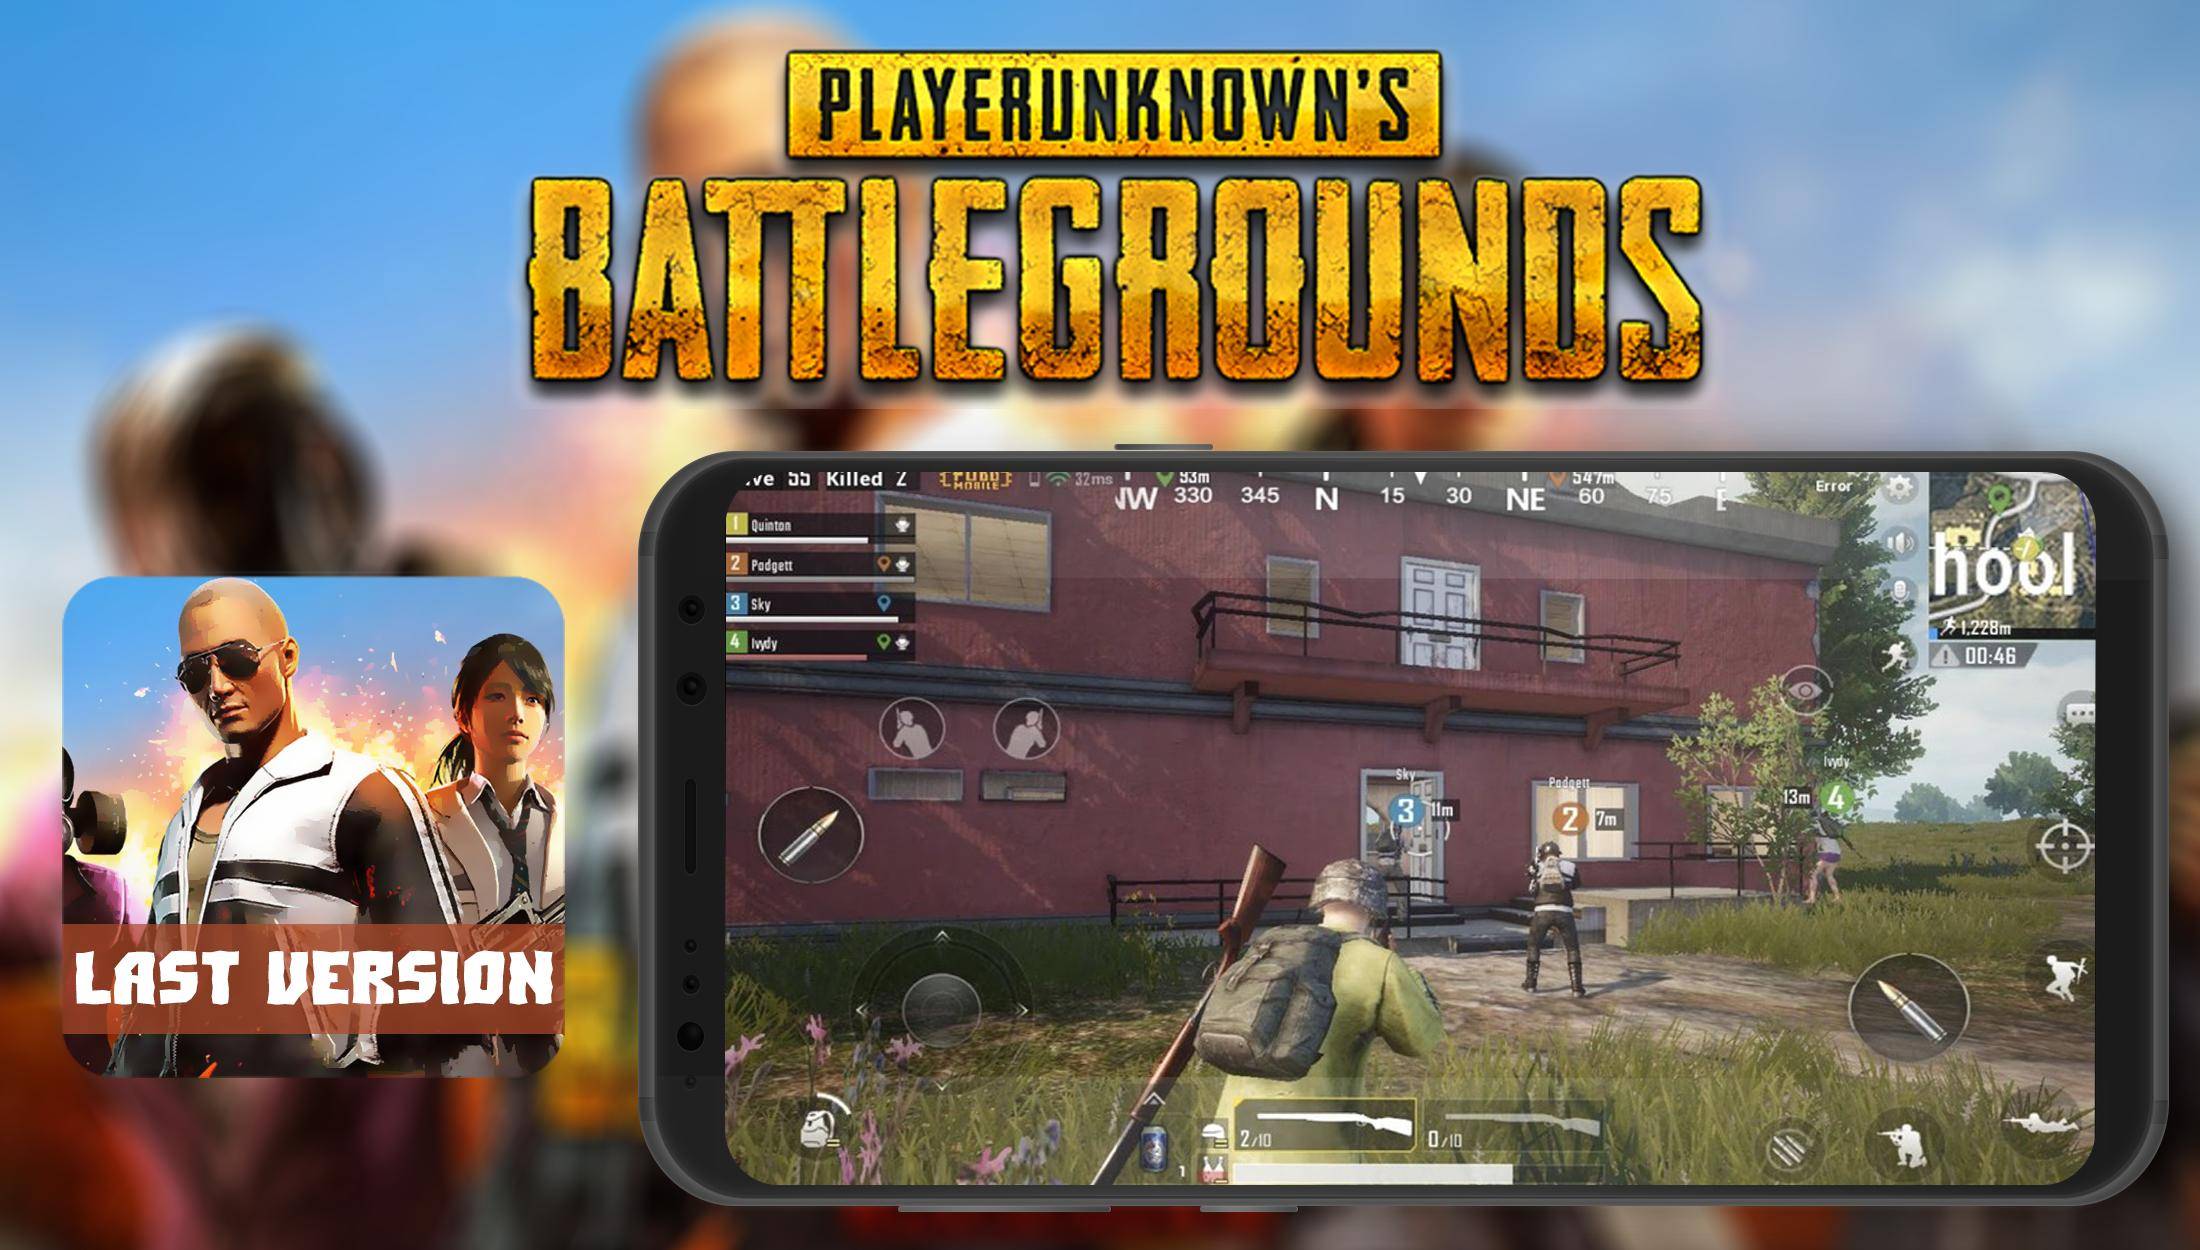 pubg mobile for android 4.2.2 free download